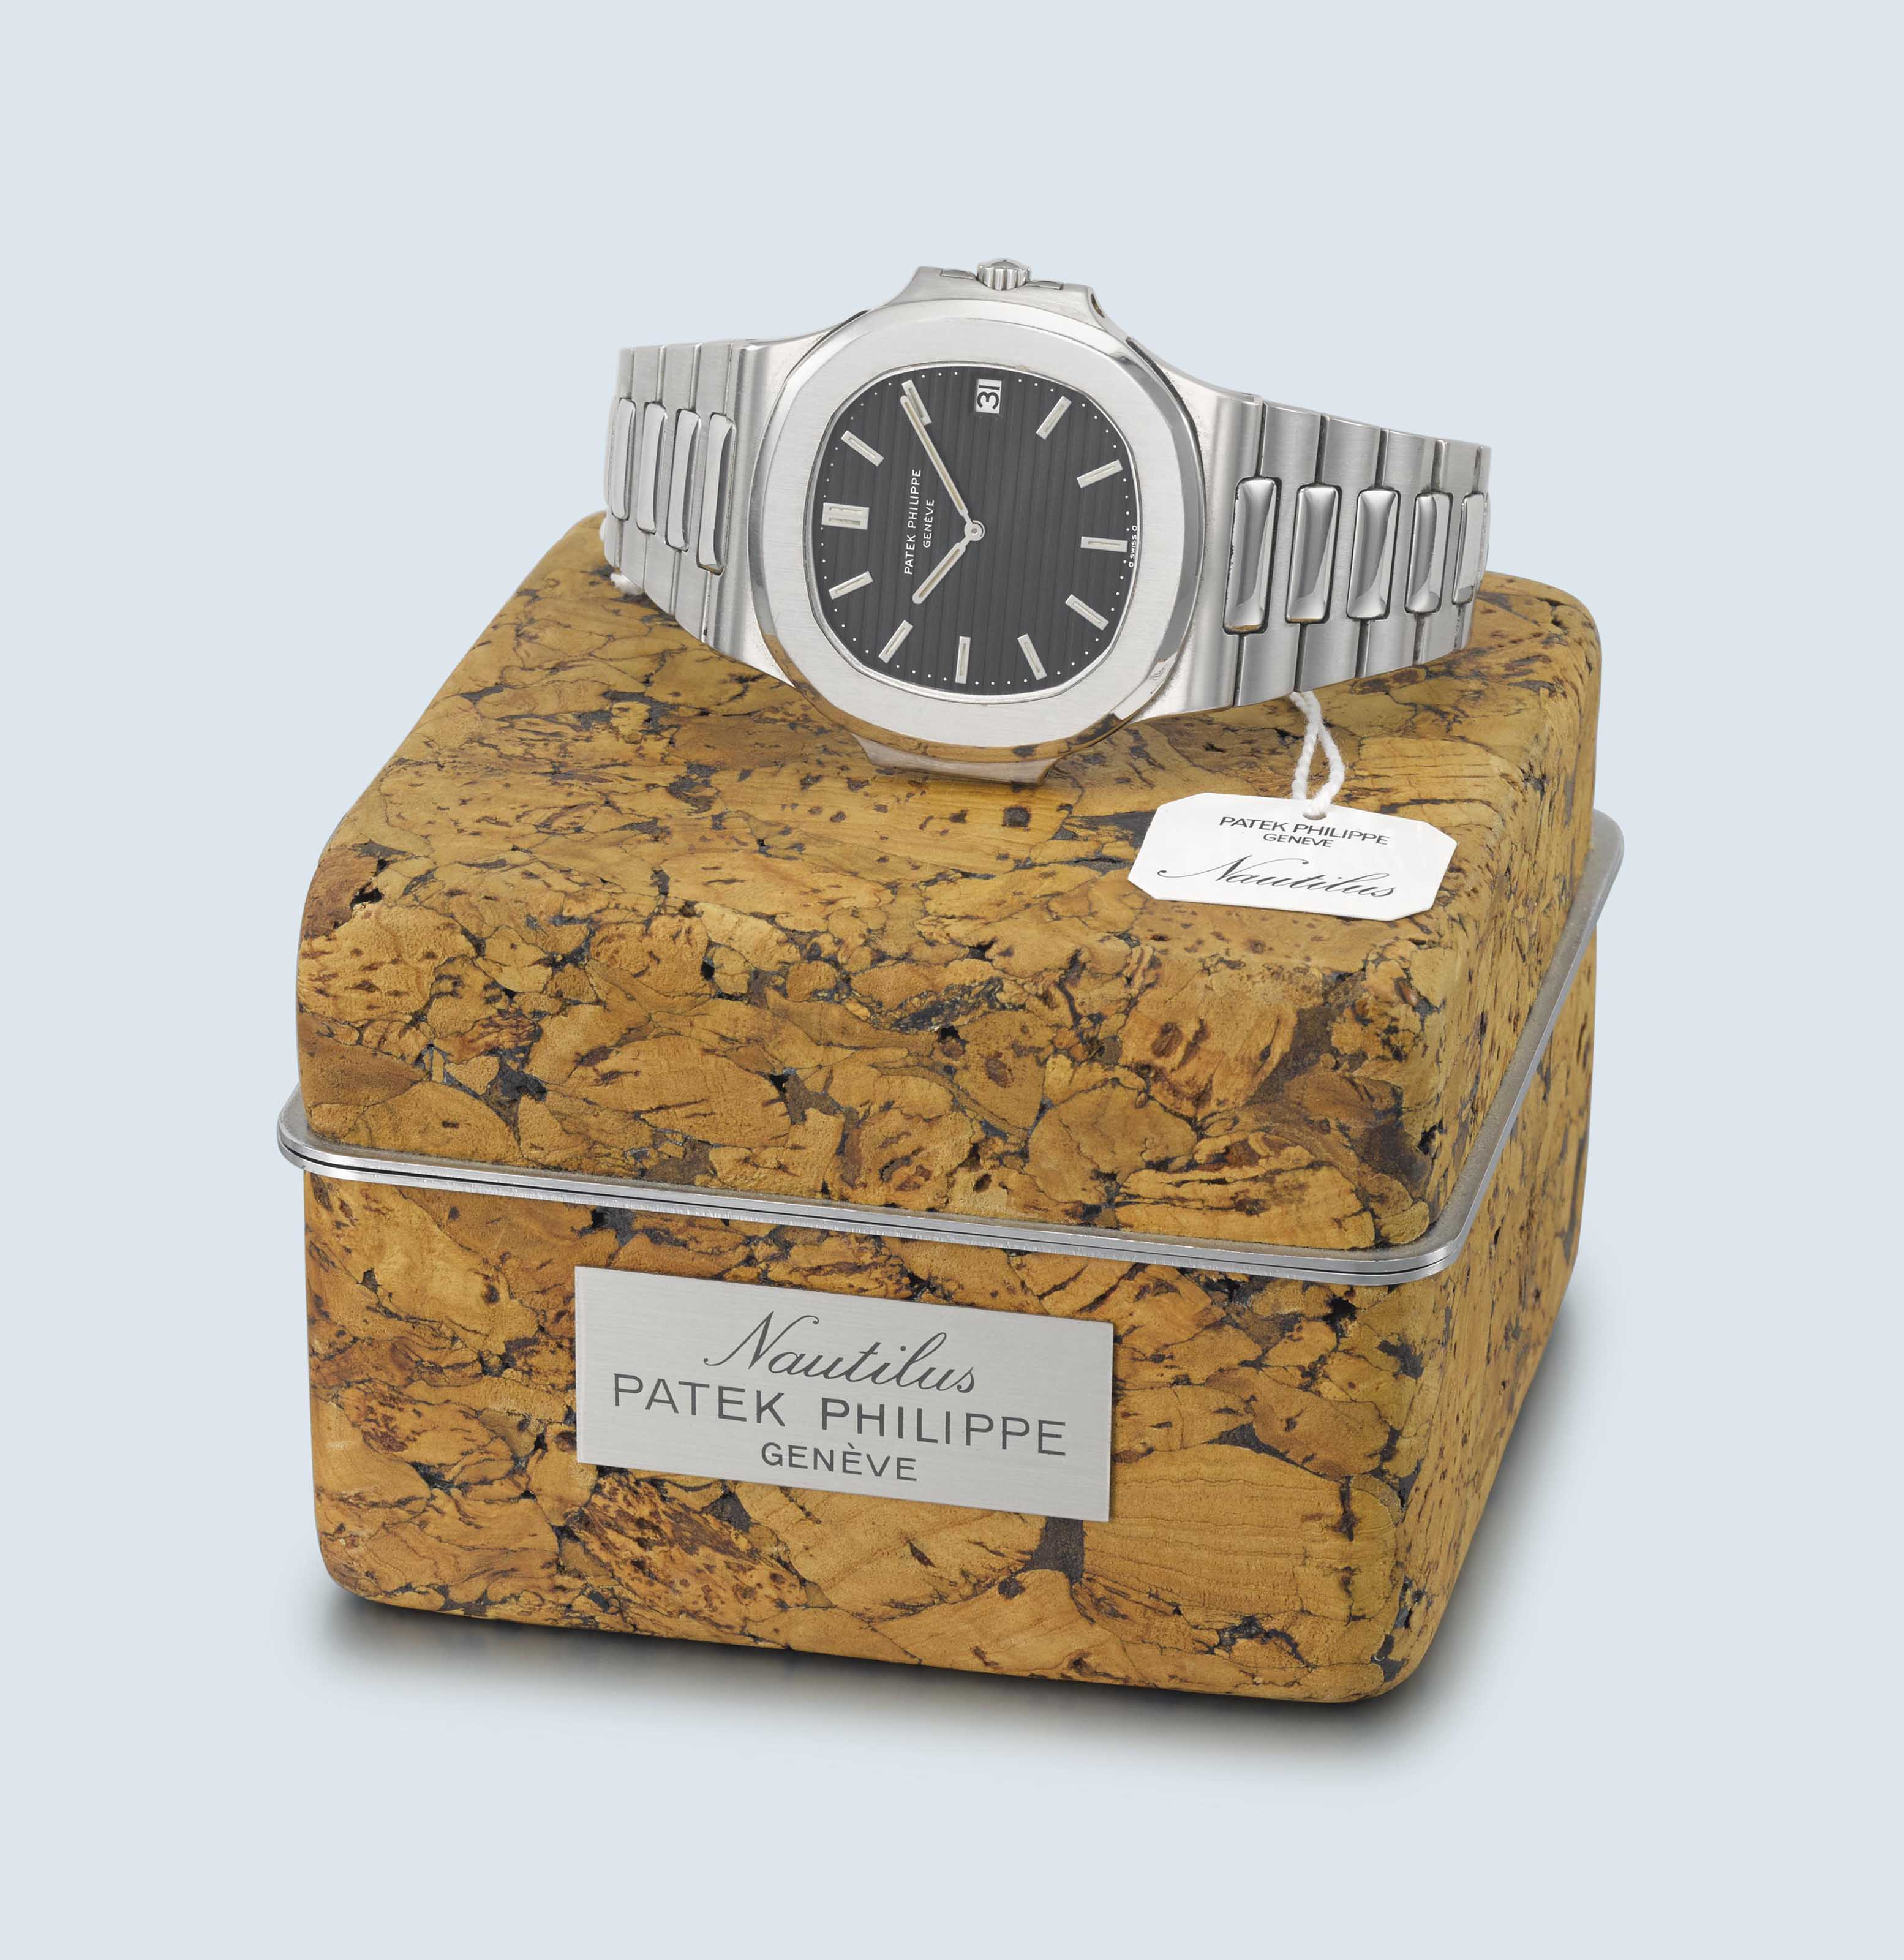 PATEK PHILIPPE. A VERY RARE AND FINE STAINLESS STEEL AUTOMATIC WRISTWATCH WITH DATE, BRACELET AND ORIGINAL NAUTILUS CORK BOX